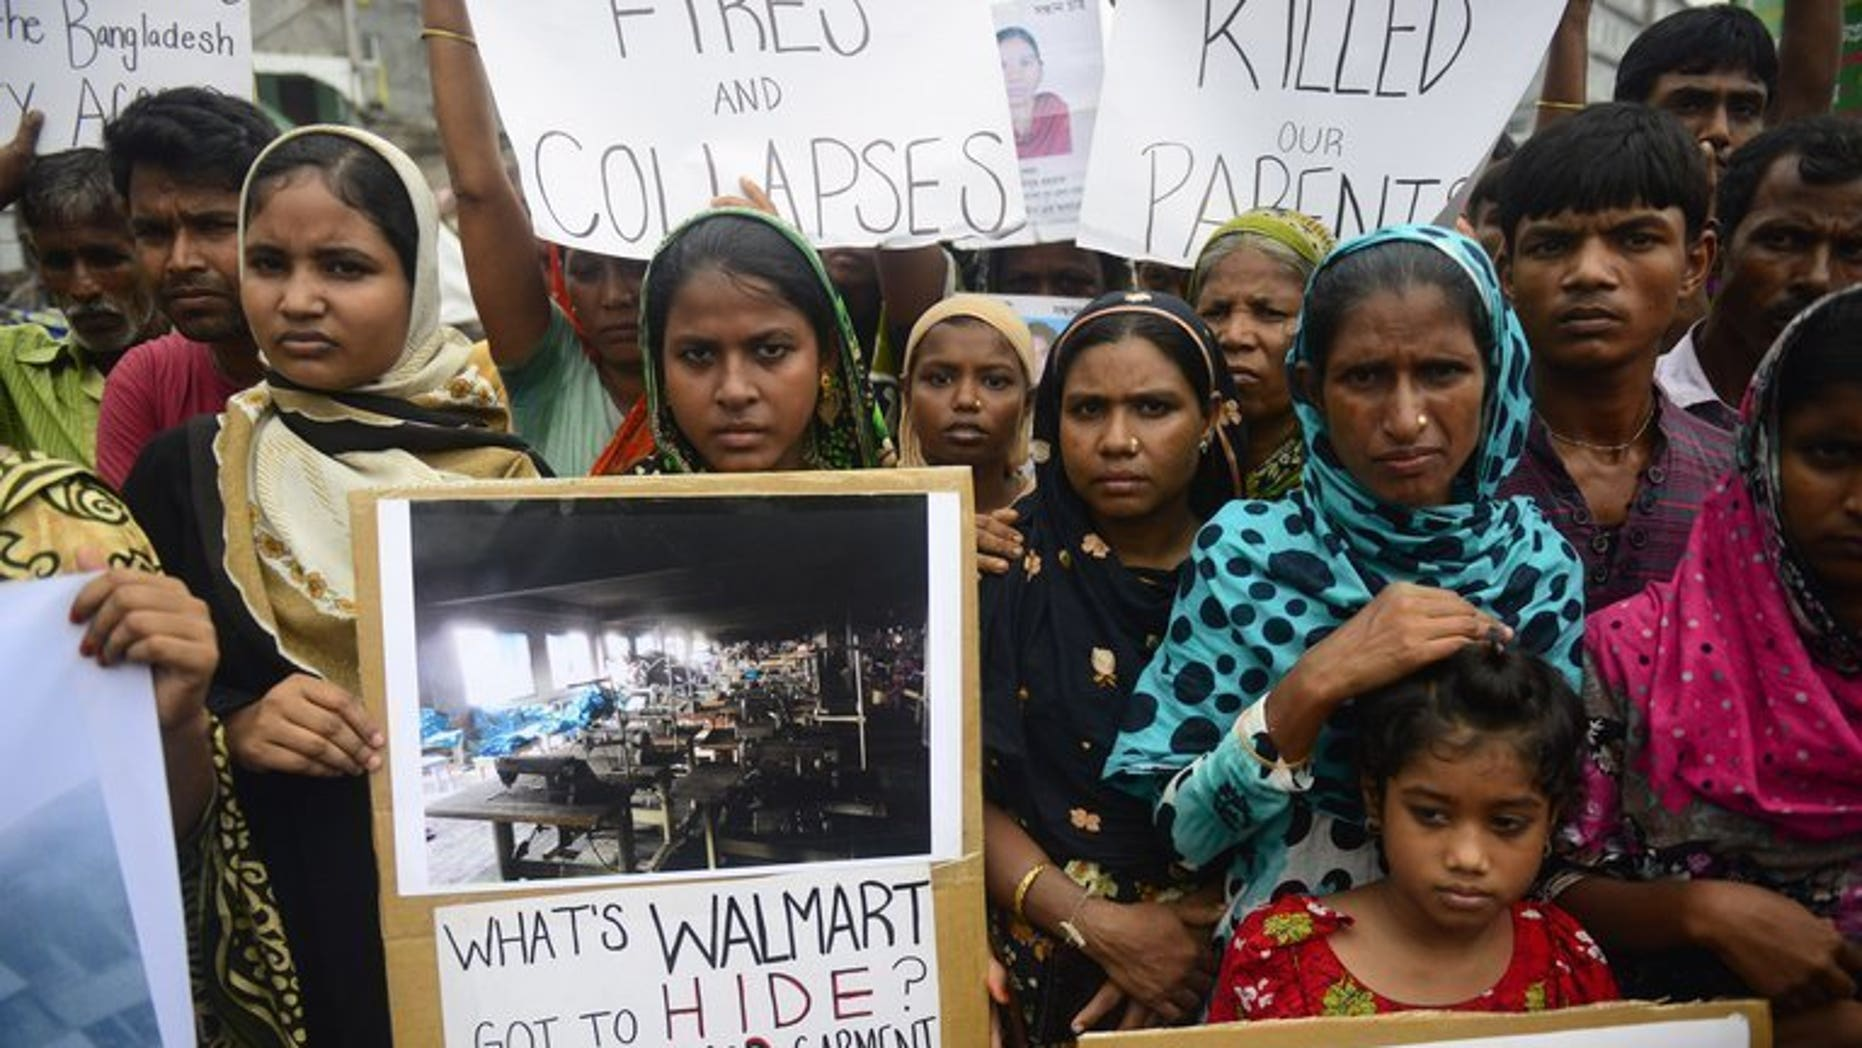 Relatives of Bangladeshi workers who lost their lives in a garment factory disaster protest in Savar, on June 29, 2013. Bangladesh Monday approved a new labour law to strengthen employees' rights and improve workplace safety, following a factory building collapse that killed 1,129 people.